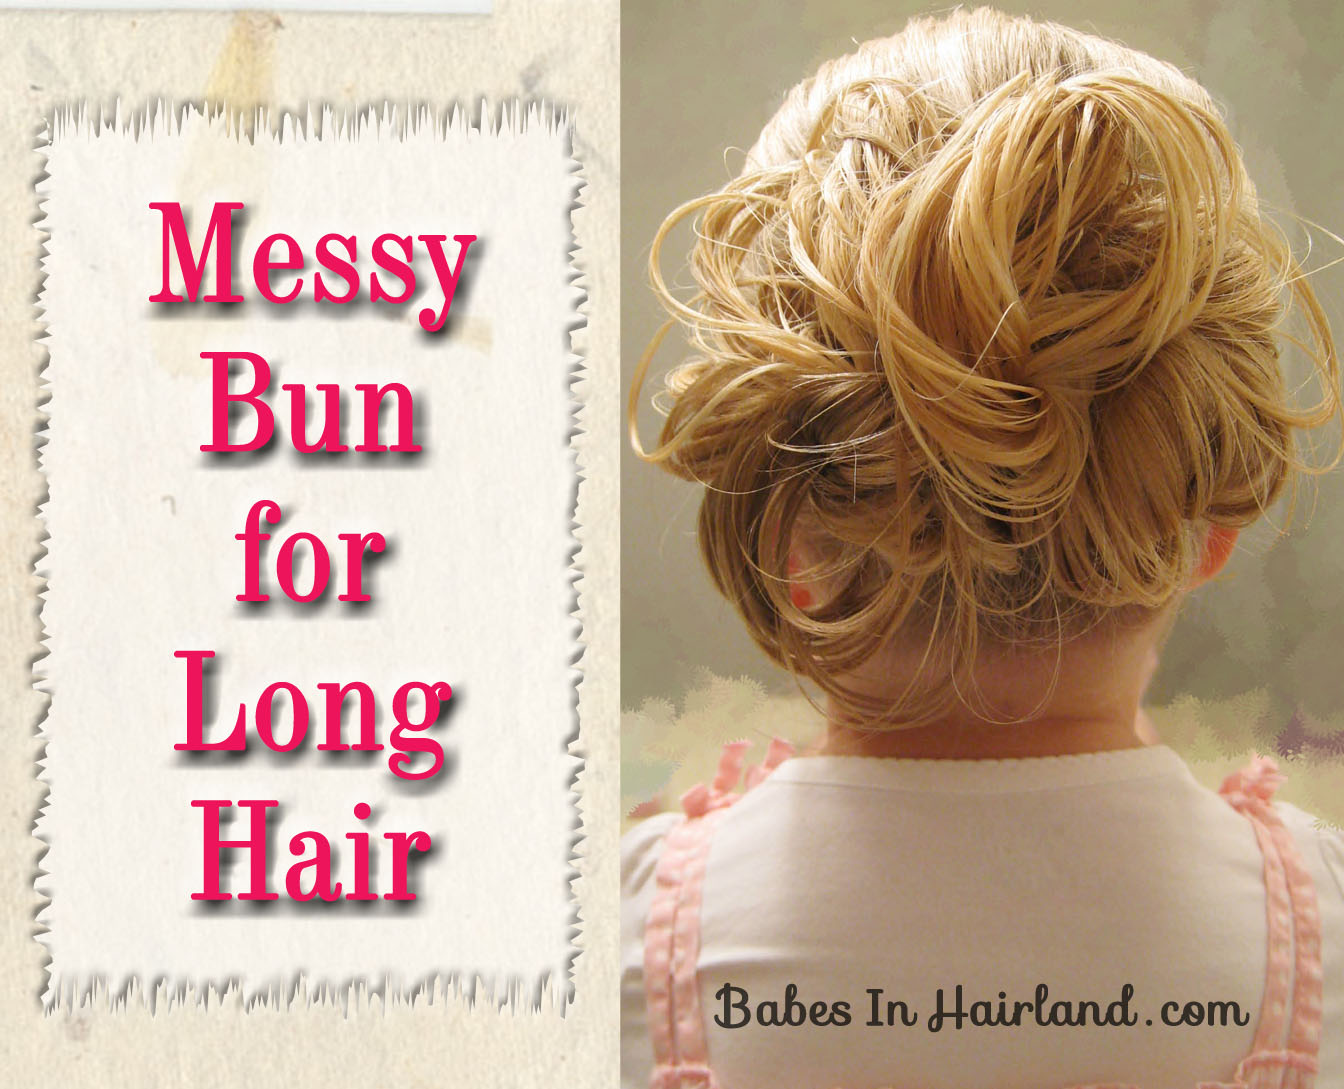 Swell Messy Bun For Long Hair Video Babes In Hairland Hairstyles For Men Maxibearus